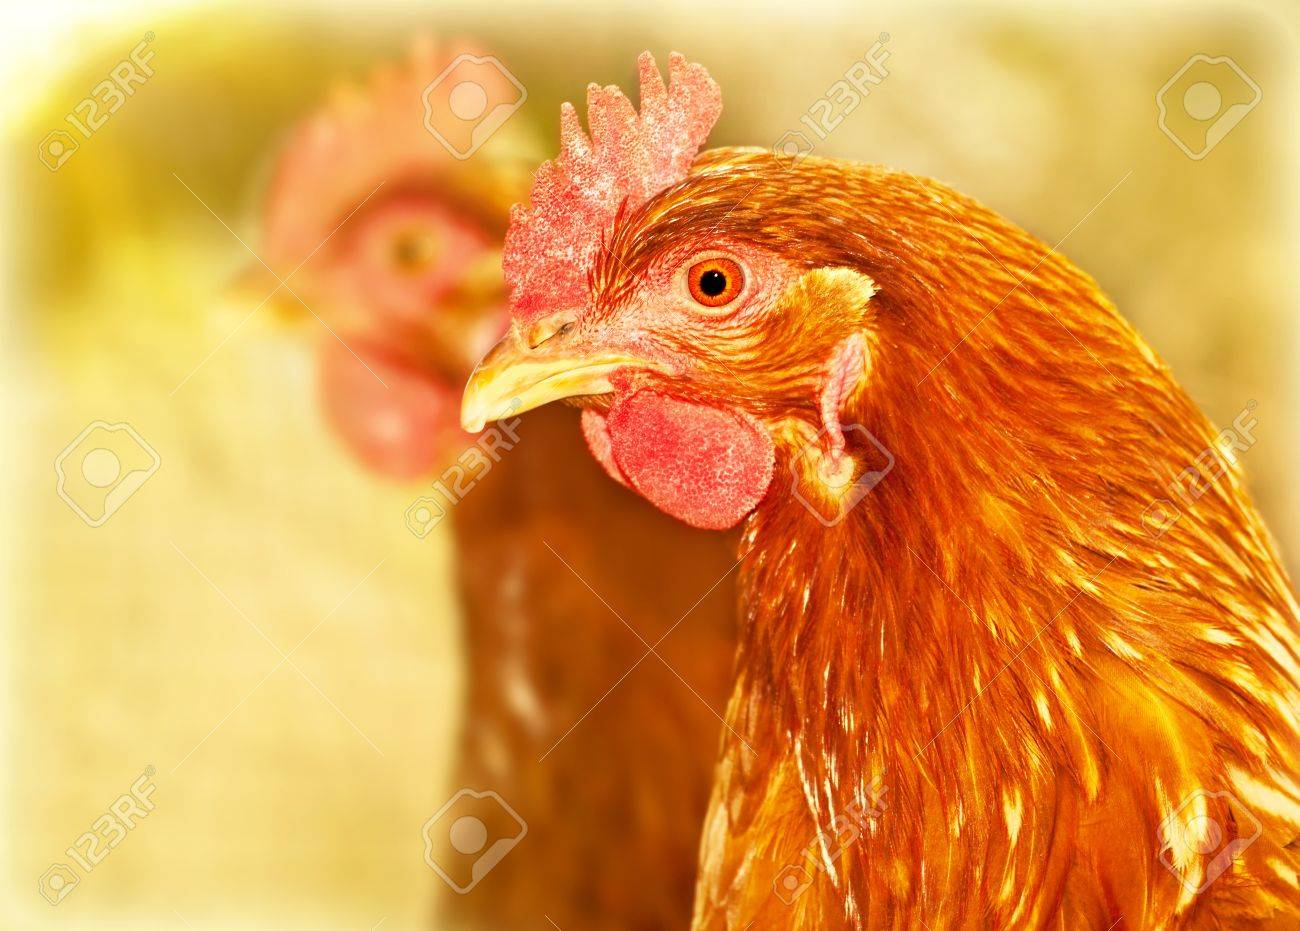 Chicken portrait, brown big bird outdoor, livestock farm land, animal profile face, agriculture industry Stock Photo - 14086318